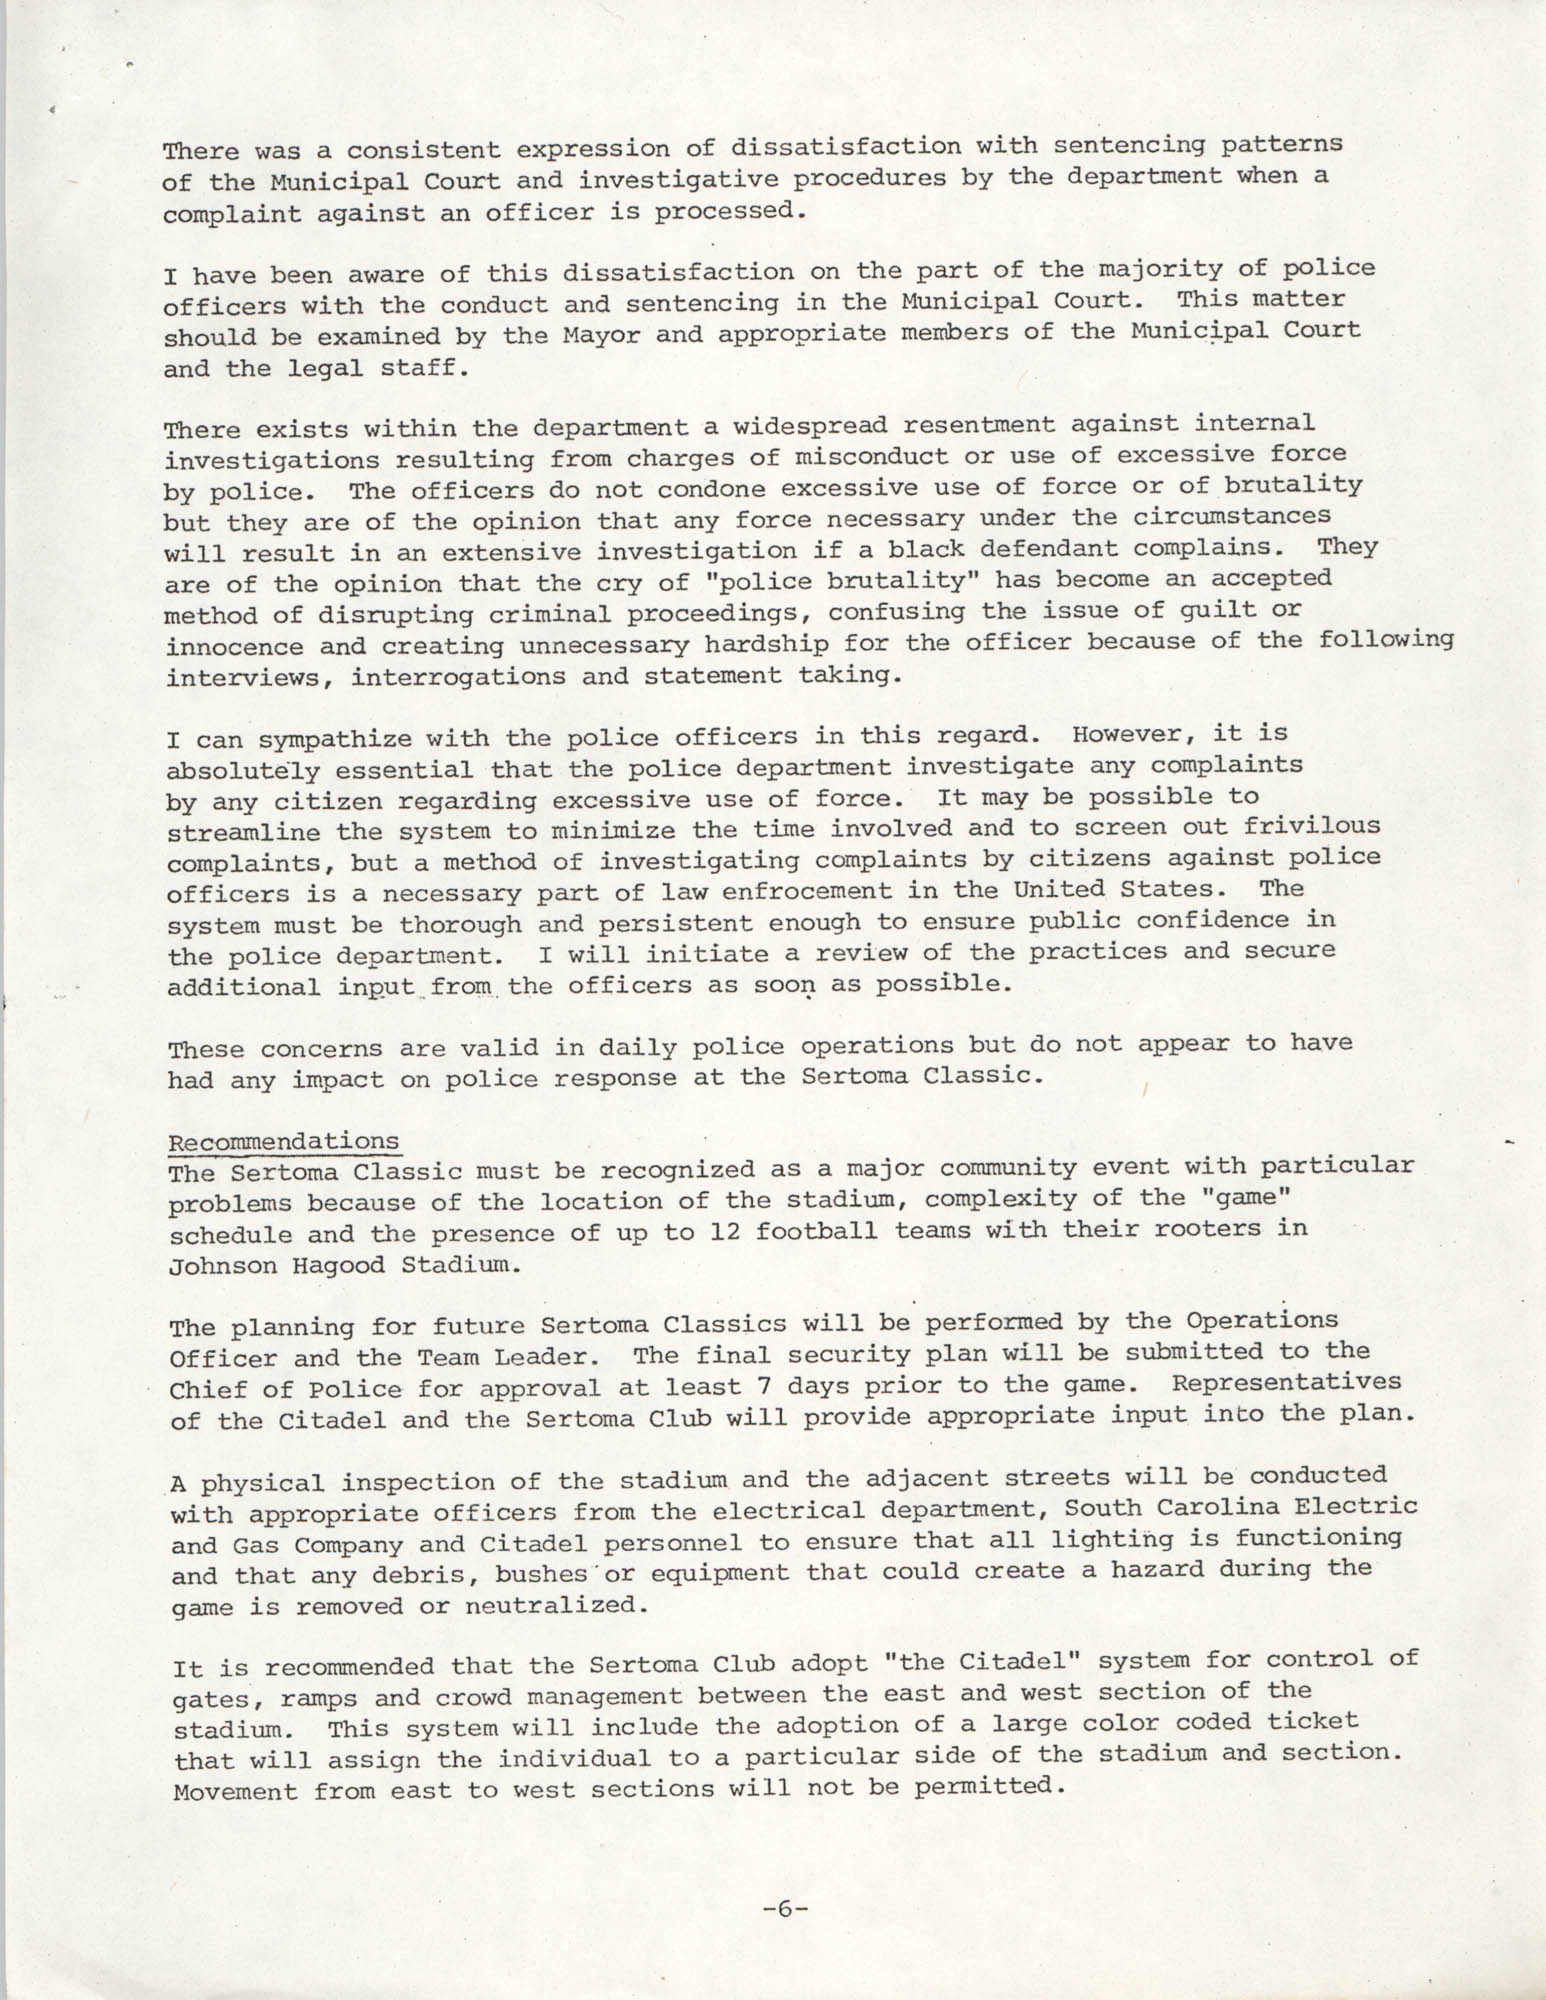 City of Charleston South Carolina Police Department Memorandum, September 6, 1977, Page 6